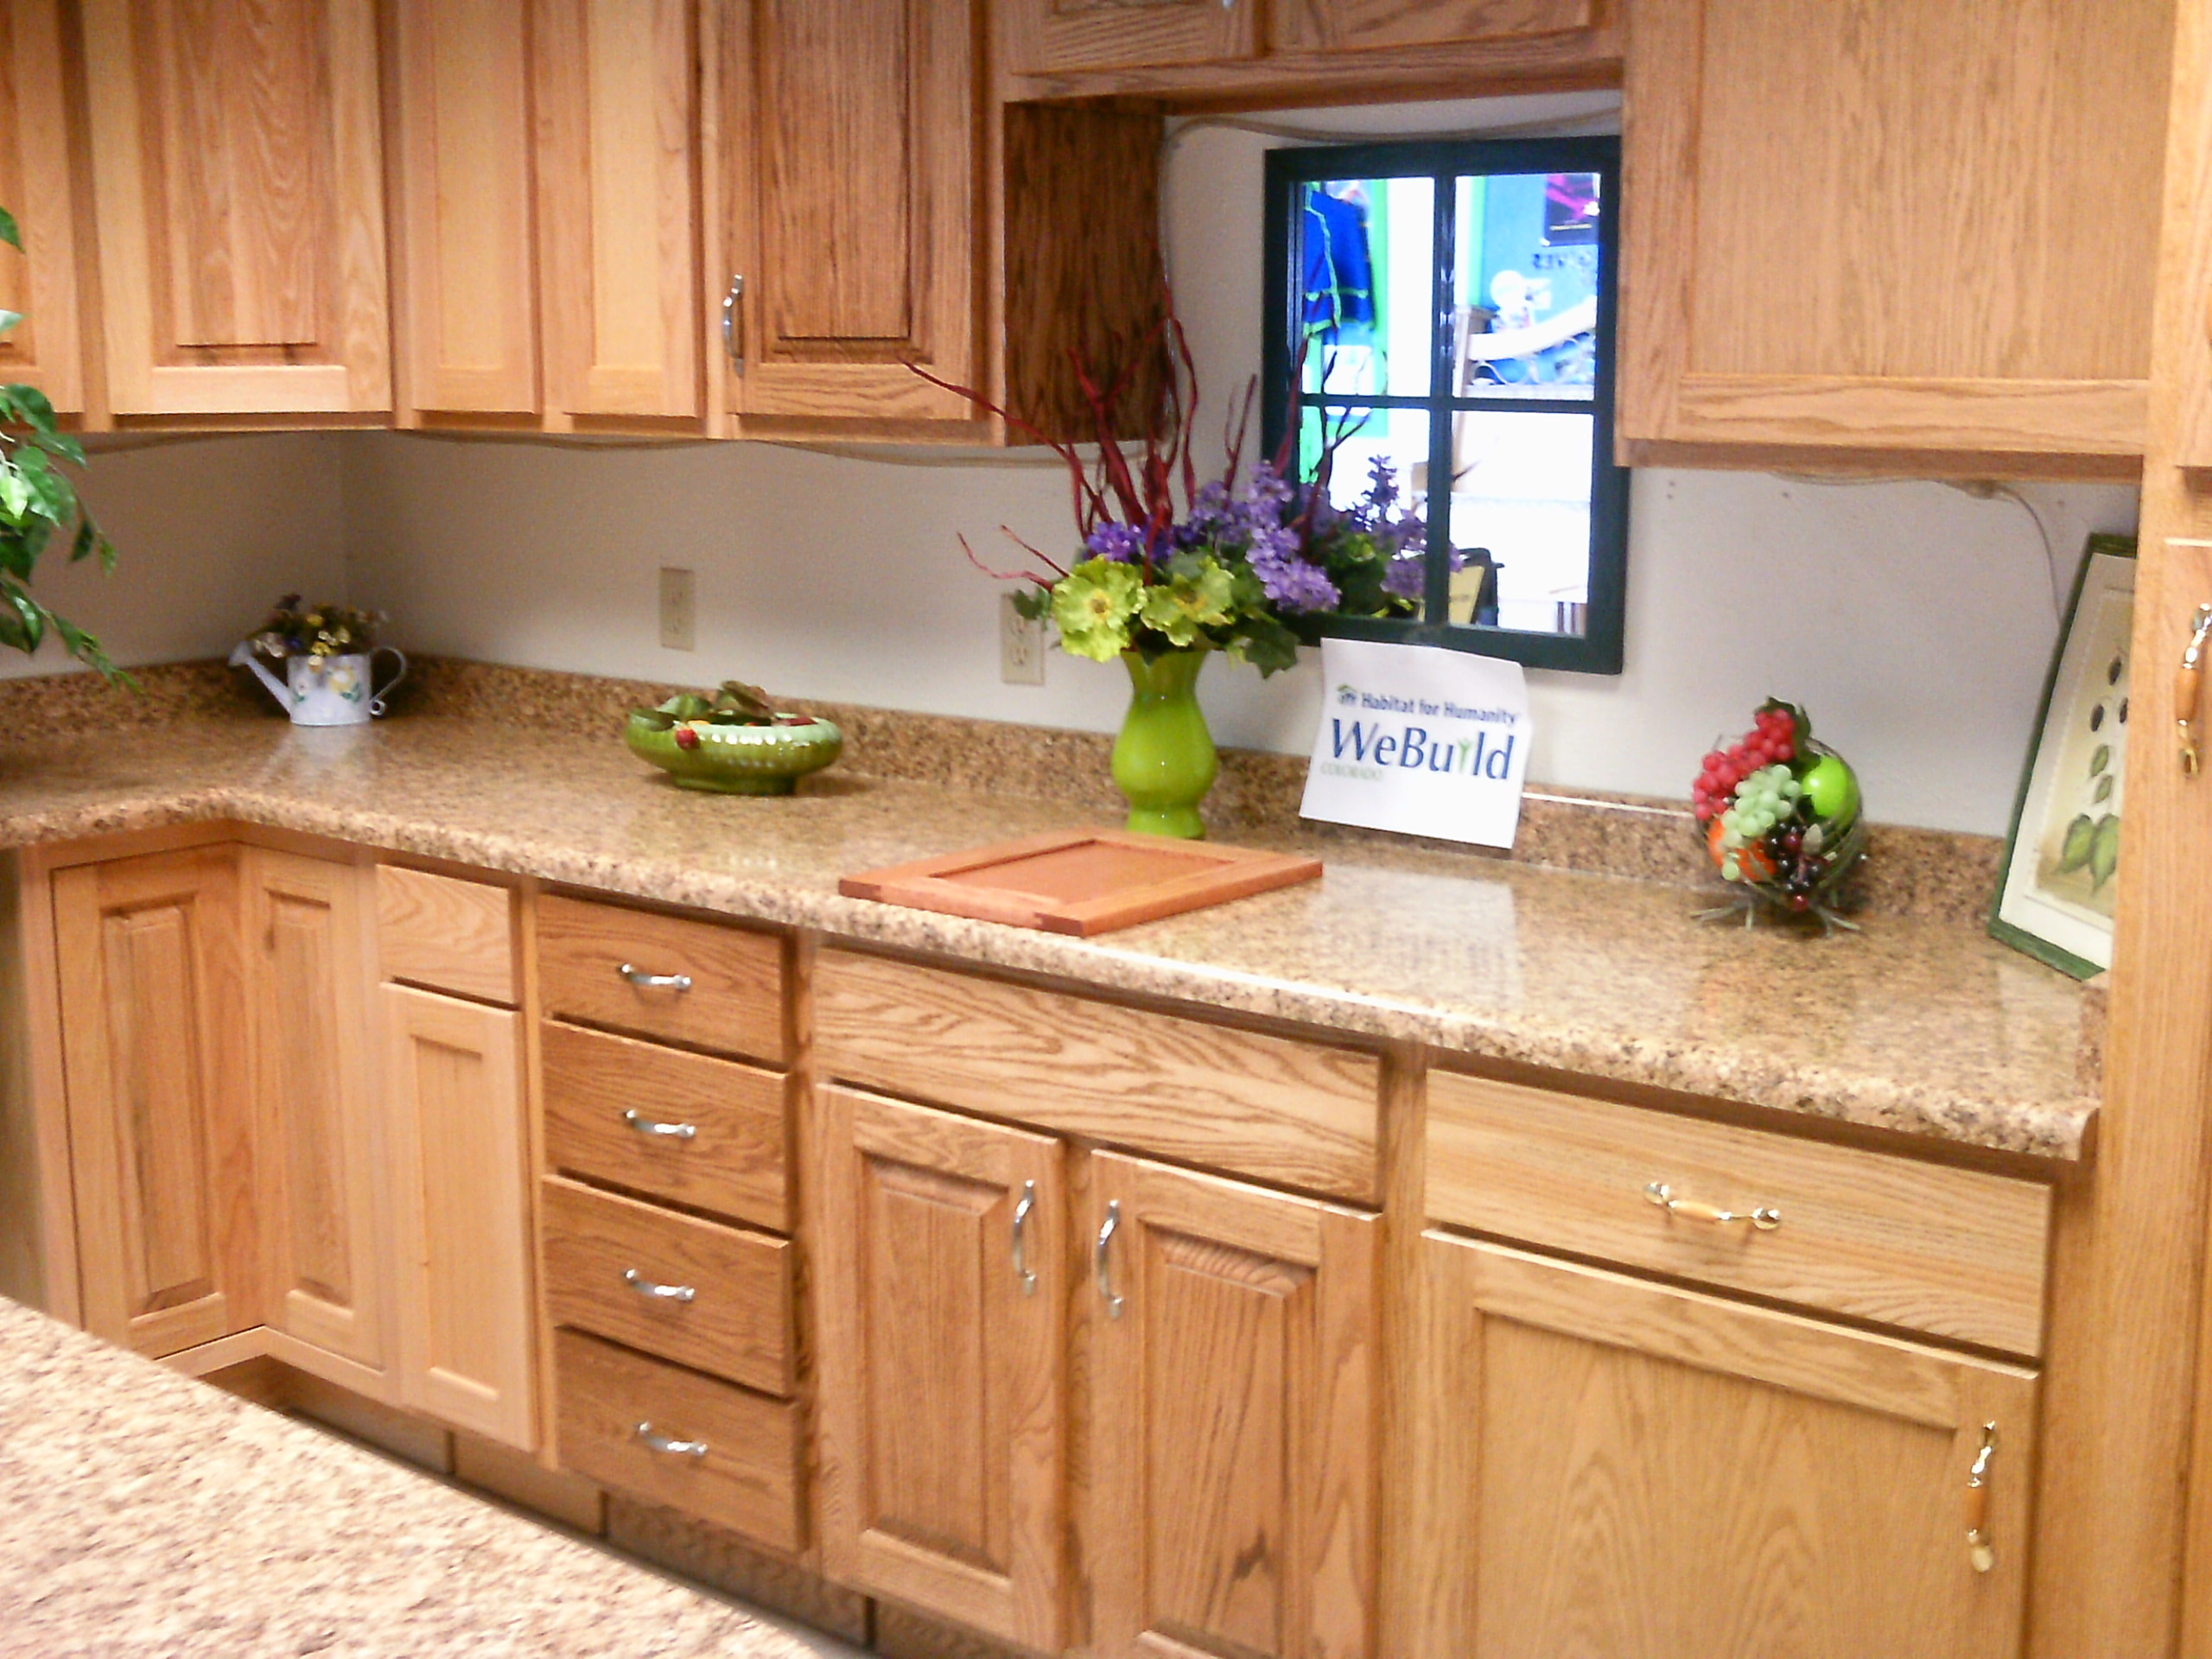 Renovating or Upgrading Your Kitchen or Man-Cave?